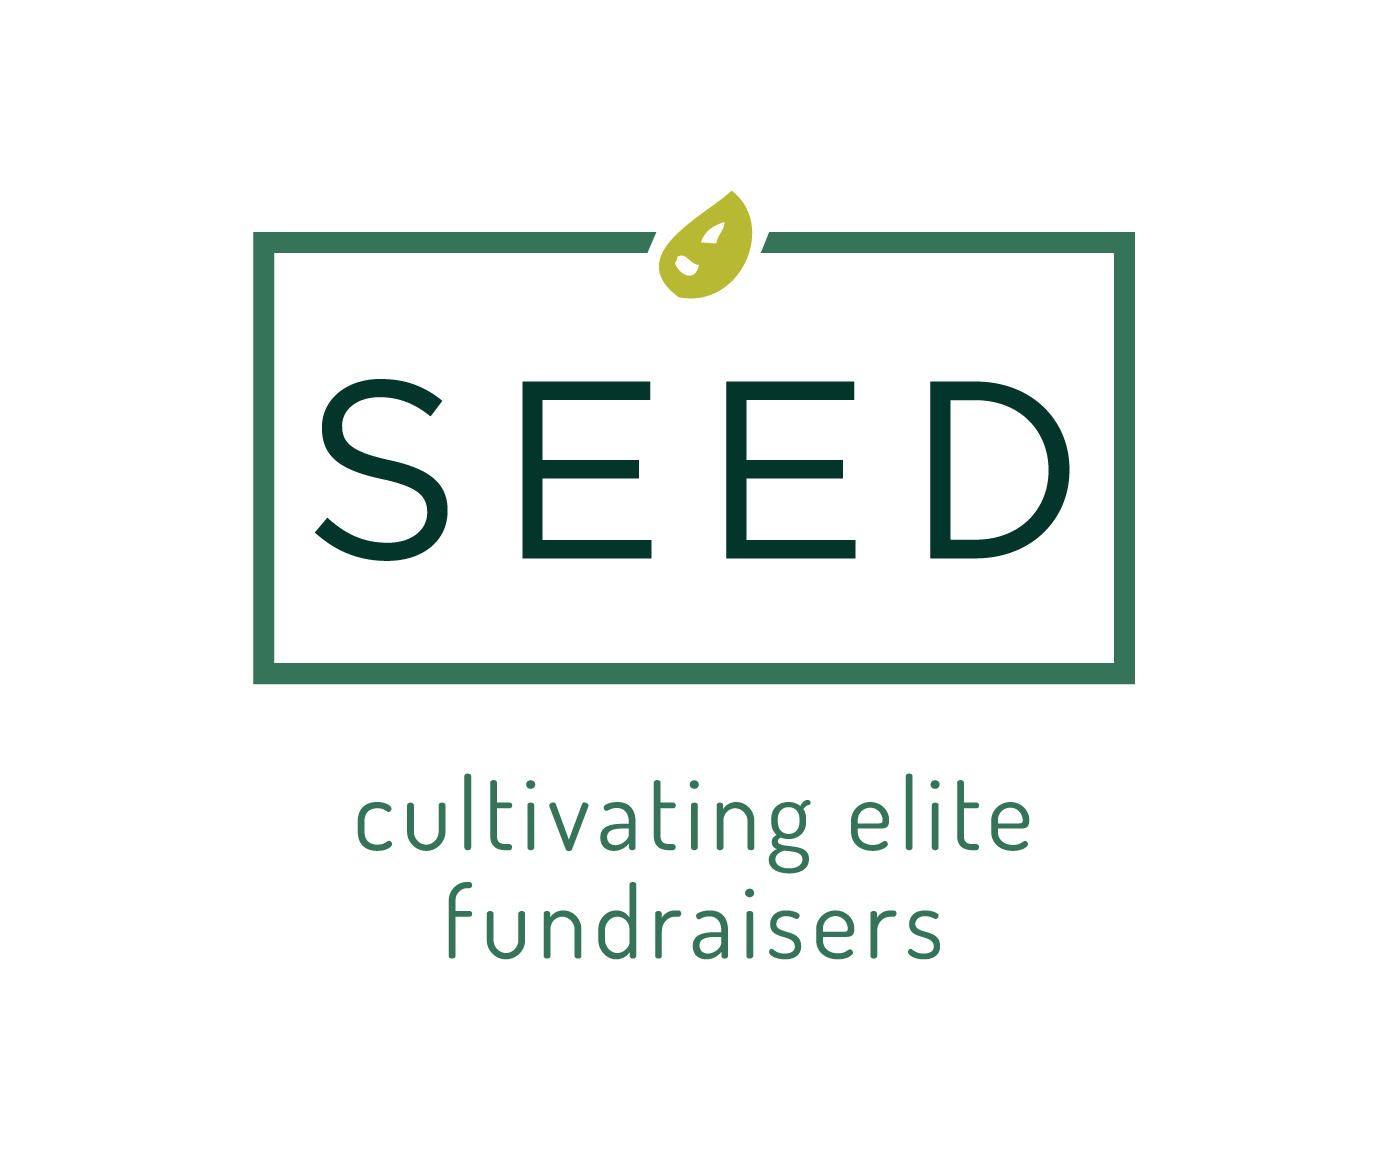 Seed Fundraisers